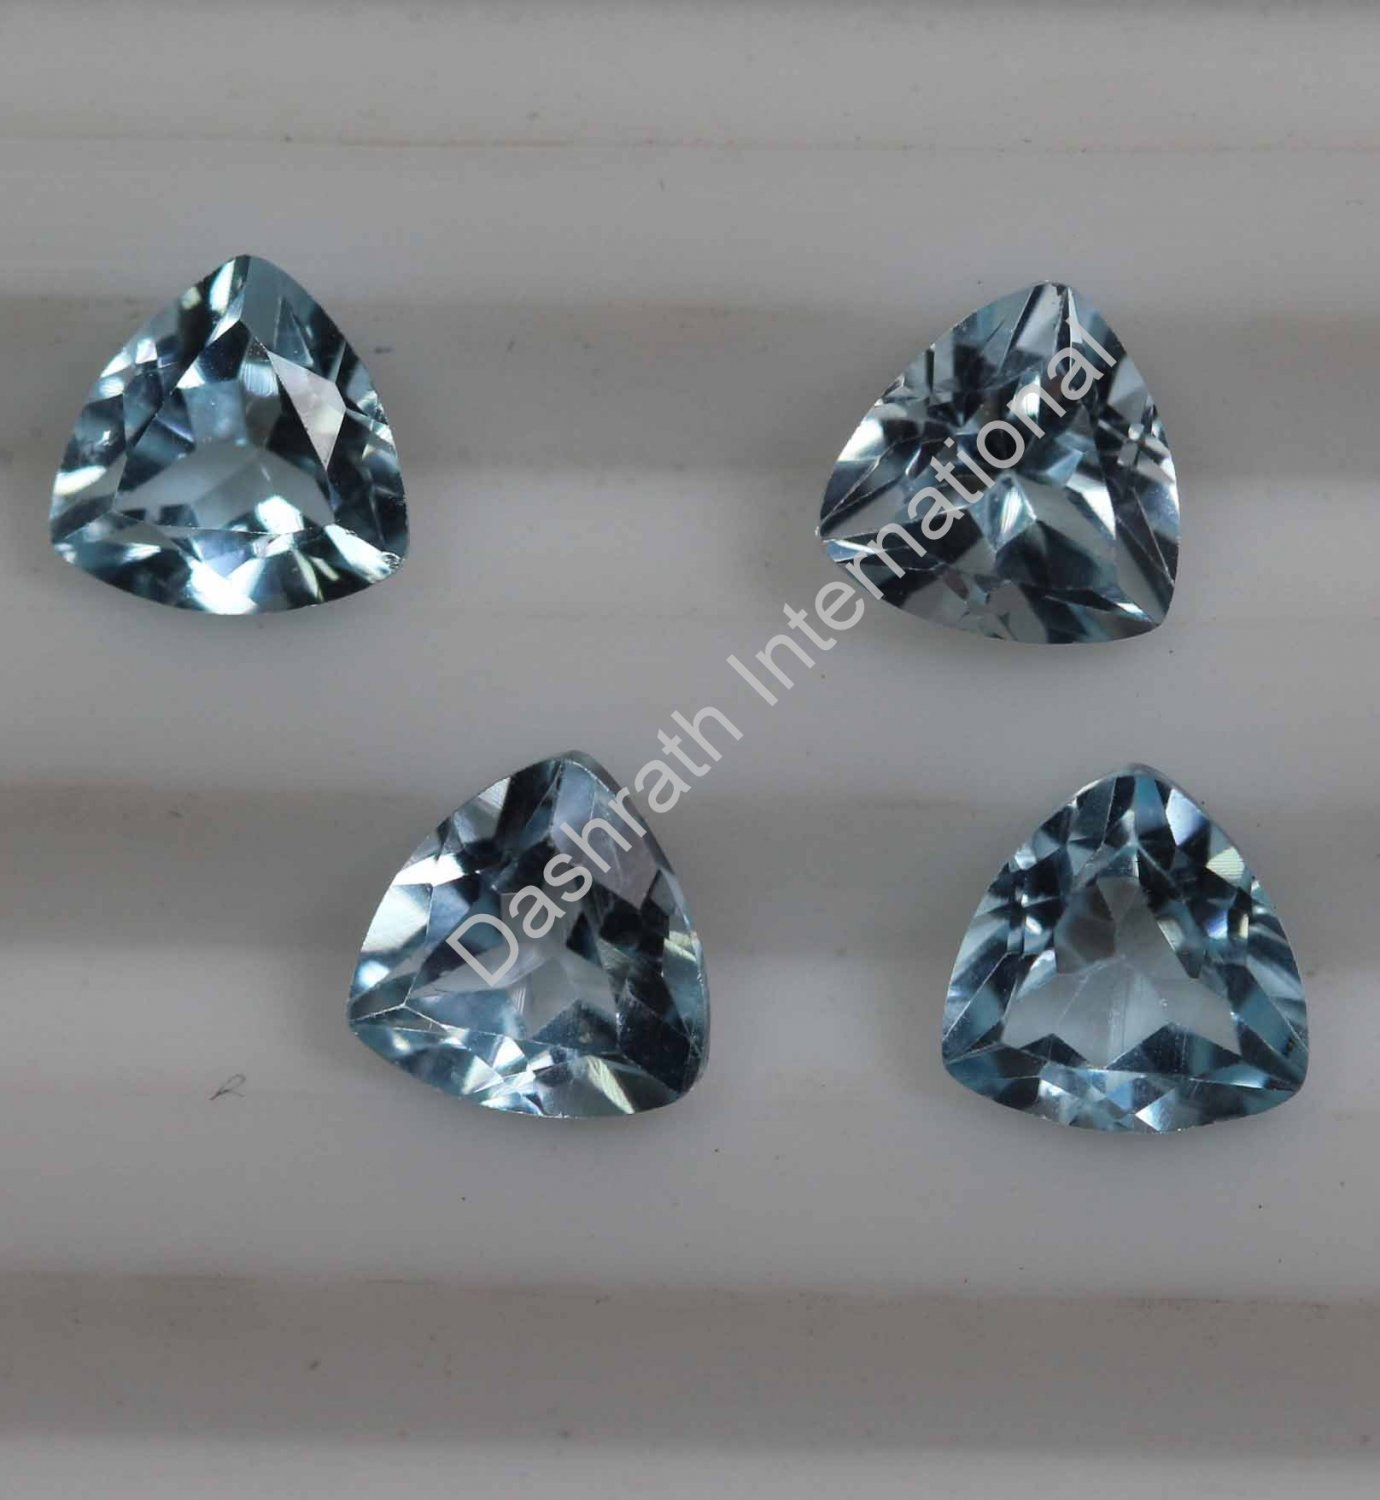 7mm Natural Sky Blue Topaz Faceted Cut Trillion 10 Pieces Lot Top Quality Loose Gemstone